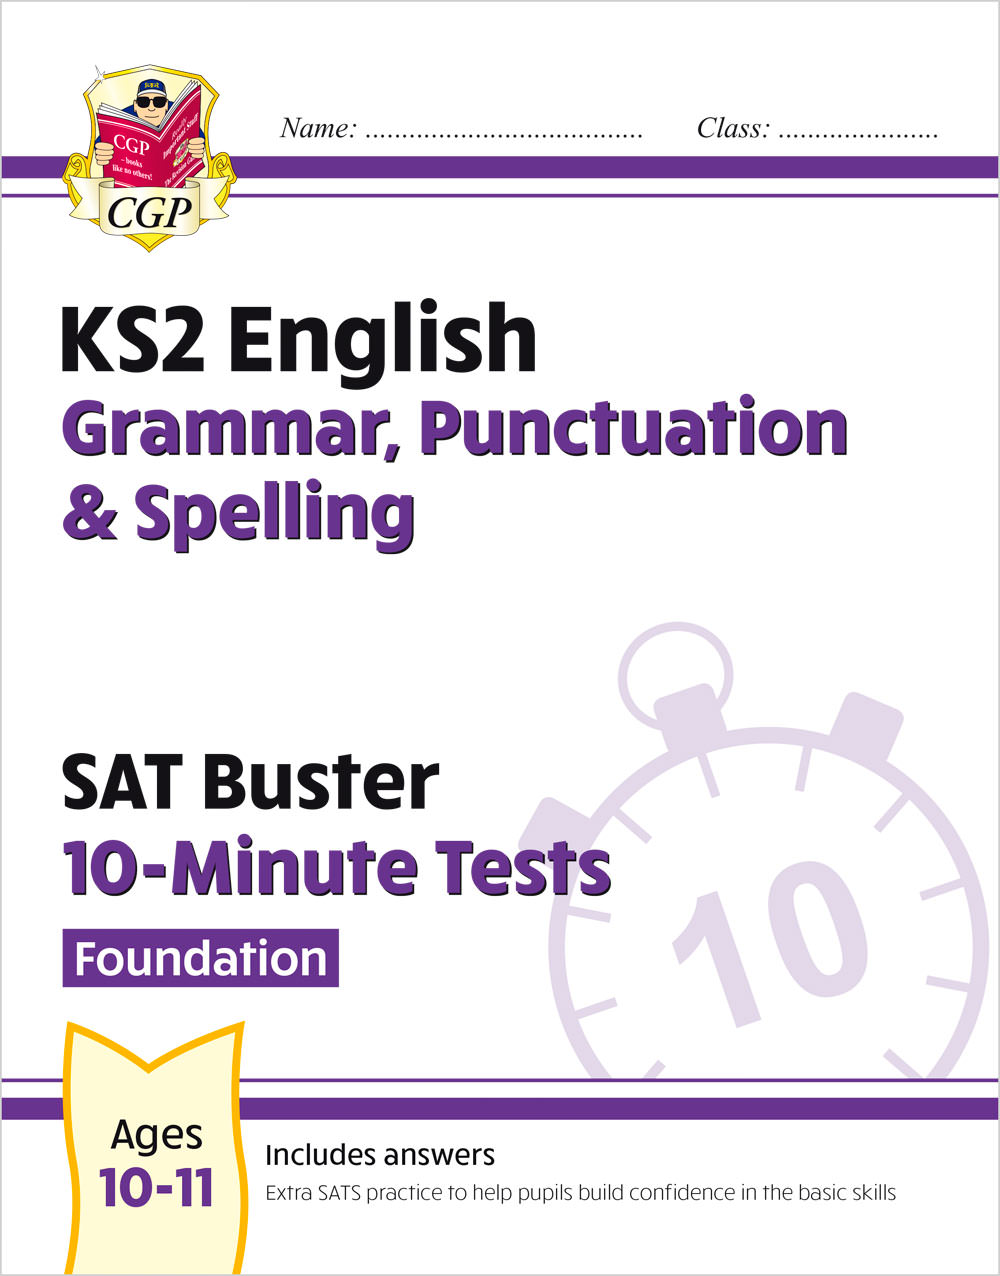 EFXPG21 - New KS2 English SAT Buster 10-Minute Tests: Grammar, Punctuation & Spelling - Foundation (